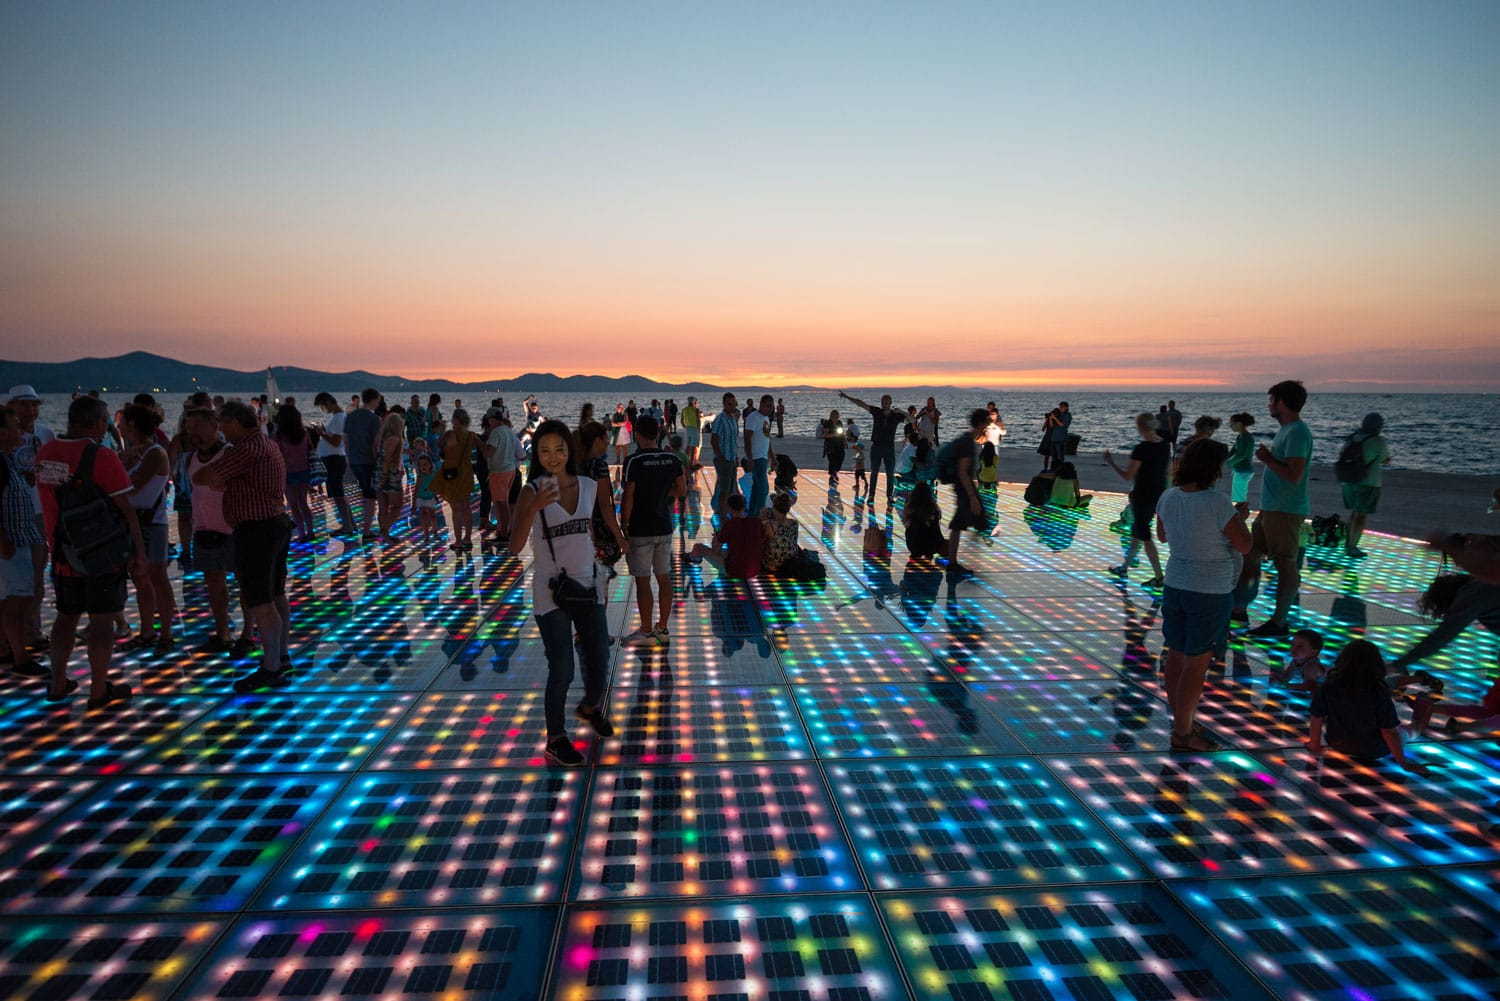 Solar panels lit up at sunset in Zadar, Croatia